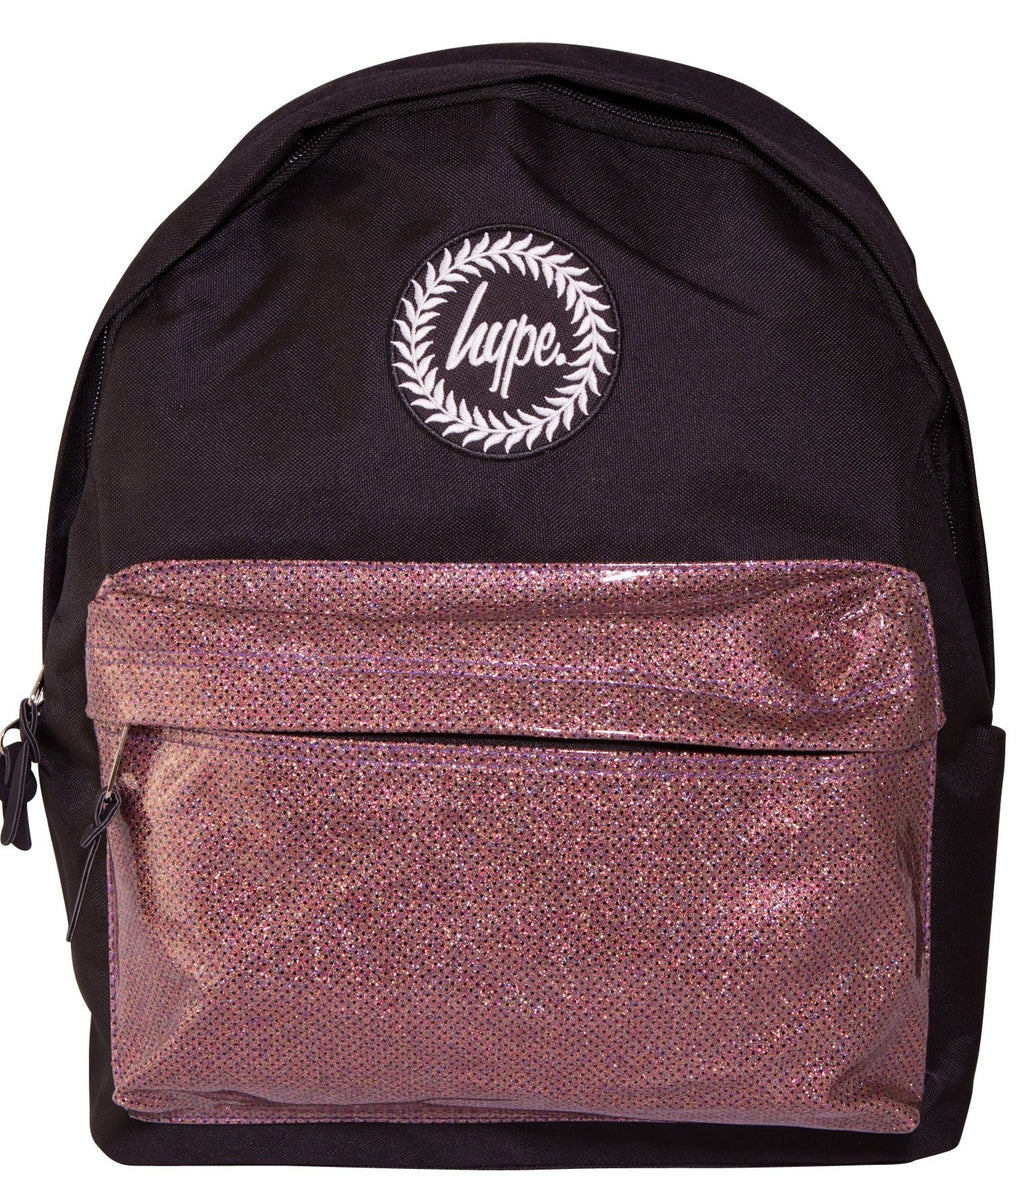 HYPE GLITTER BACKPACK RUCKSACK BAG - BLACK/PINK